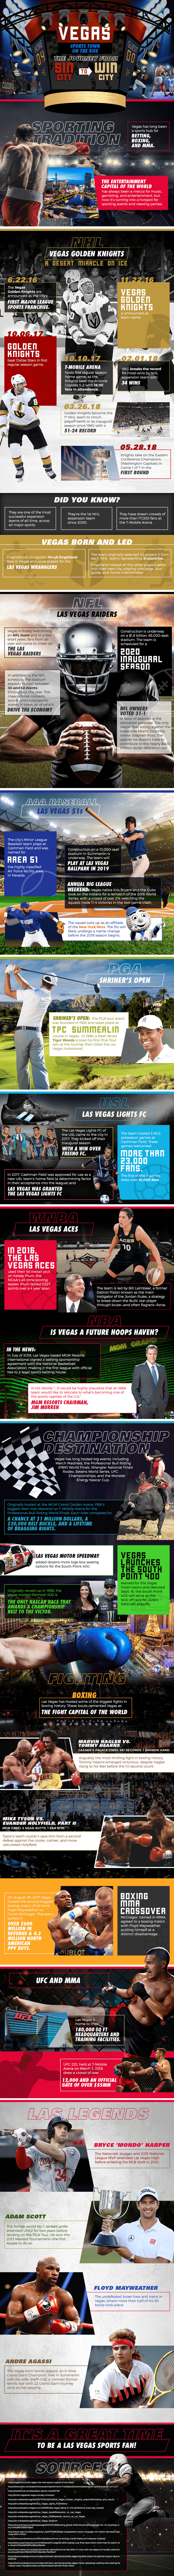 vegas sports town on the rise infographic